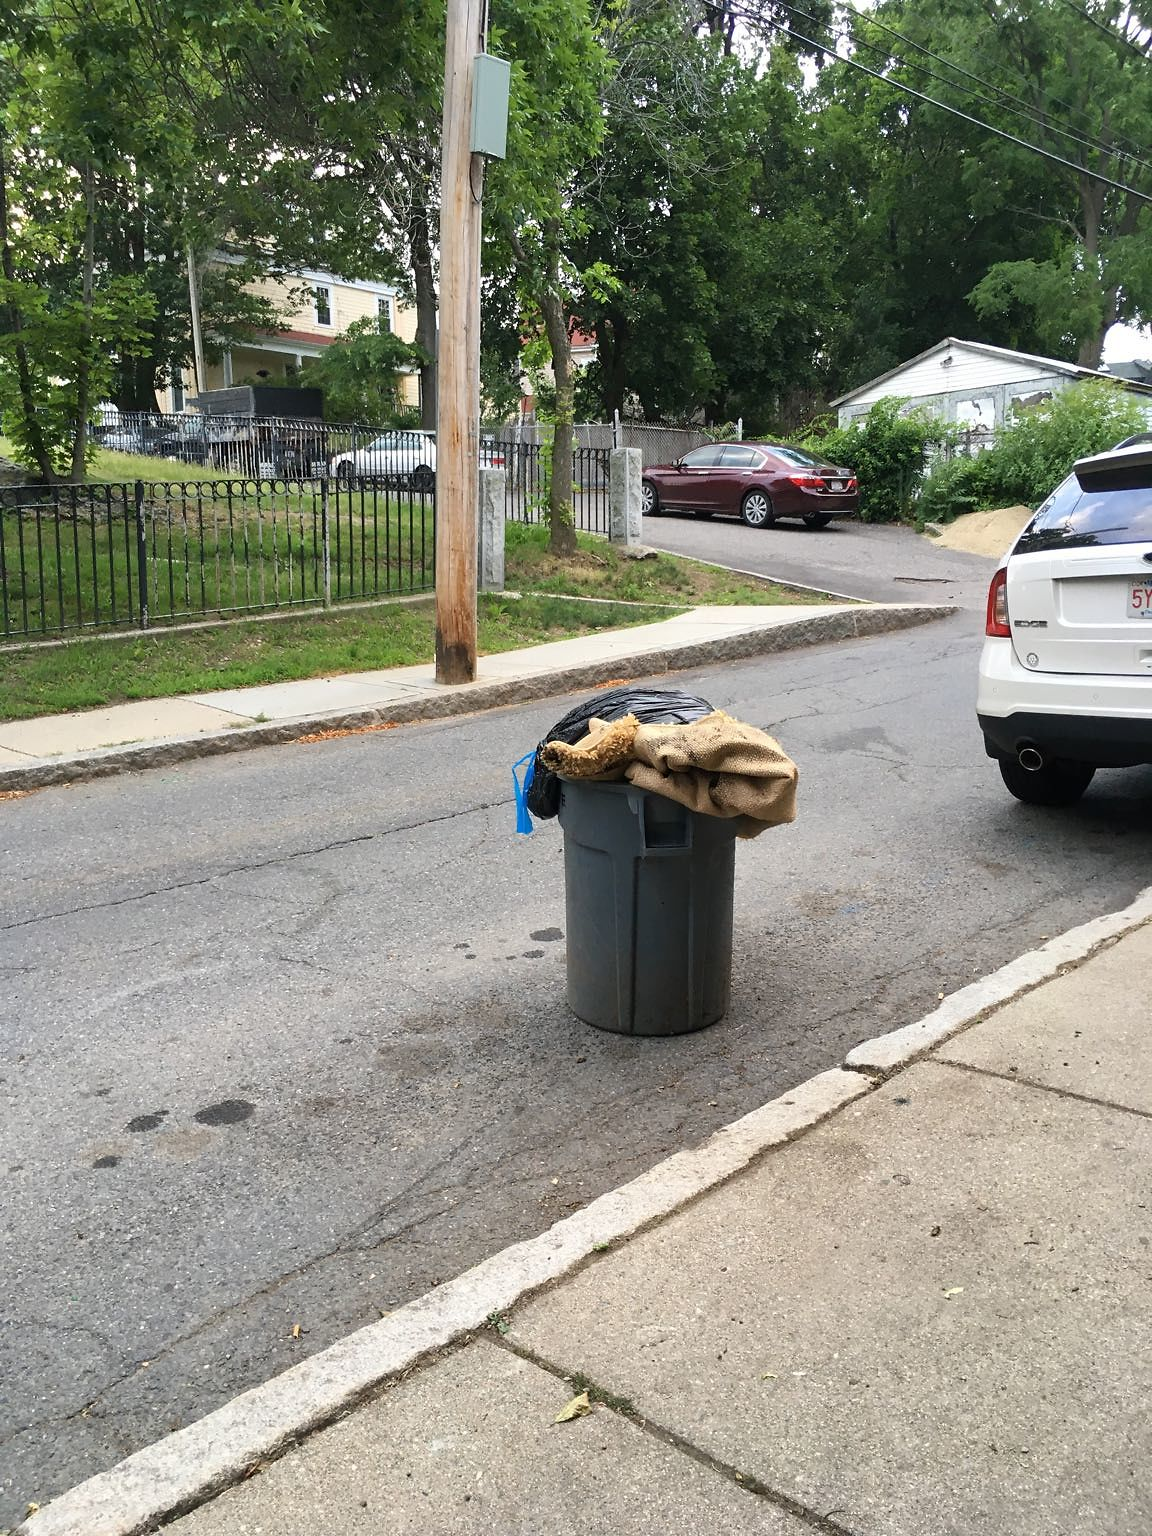 Trash not picked up.